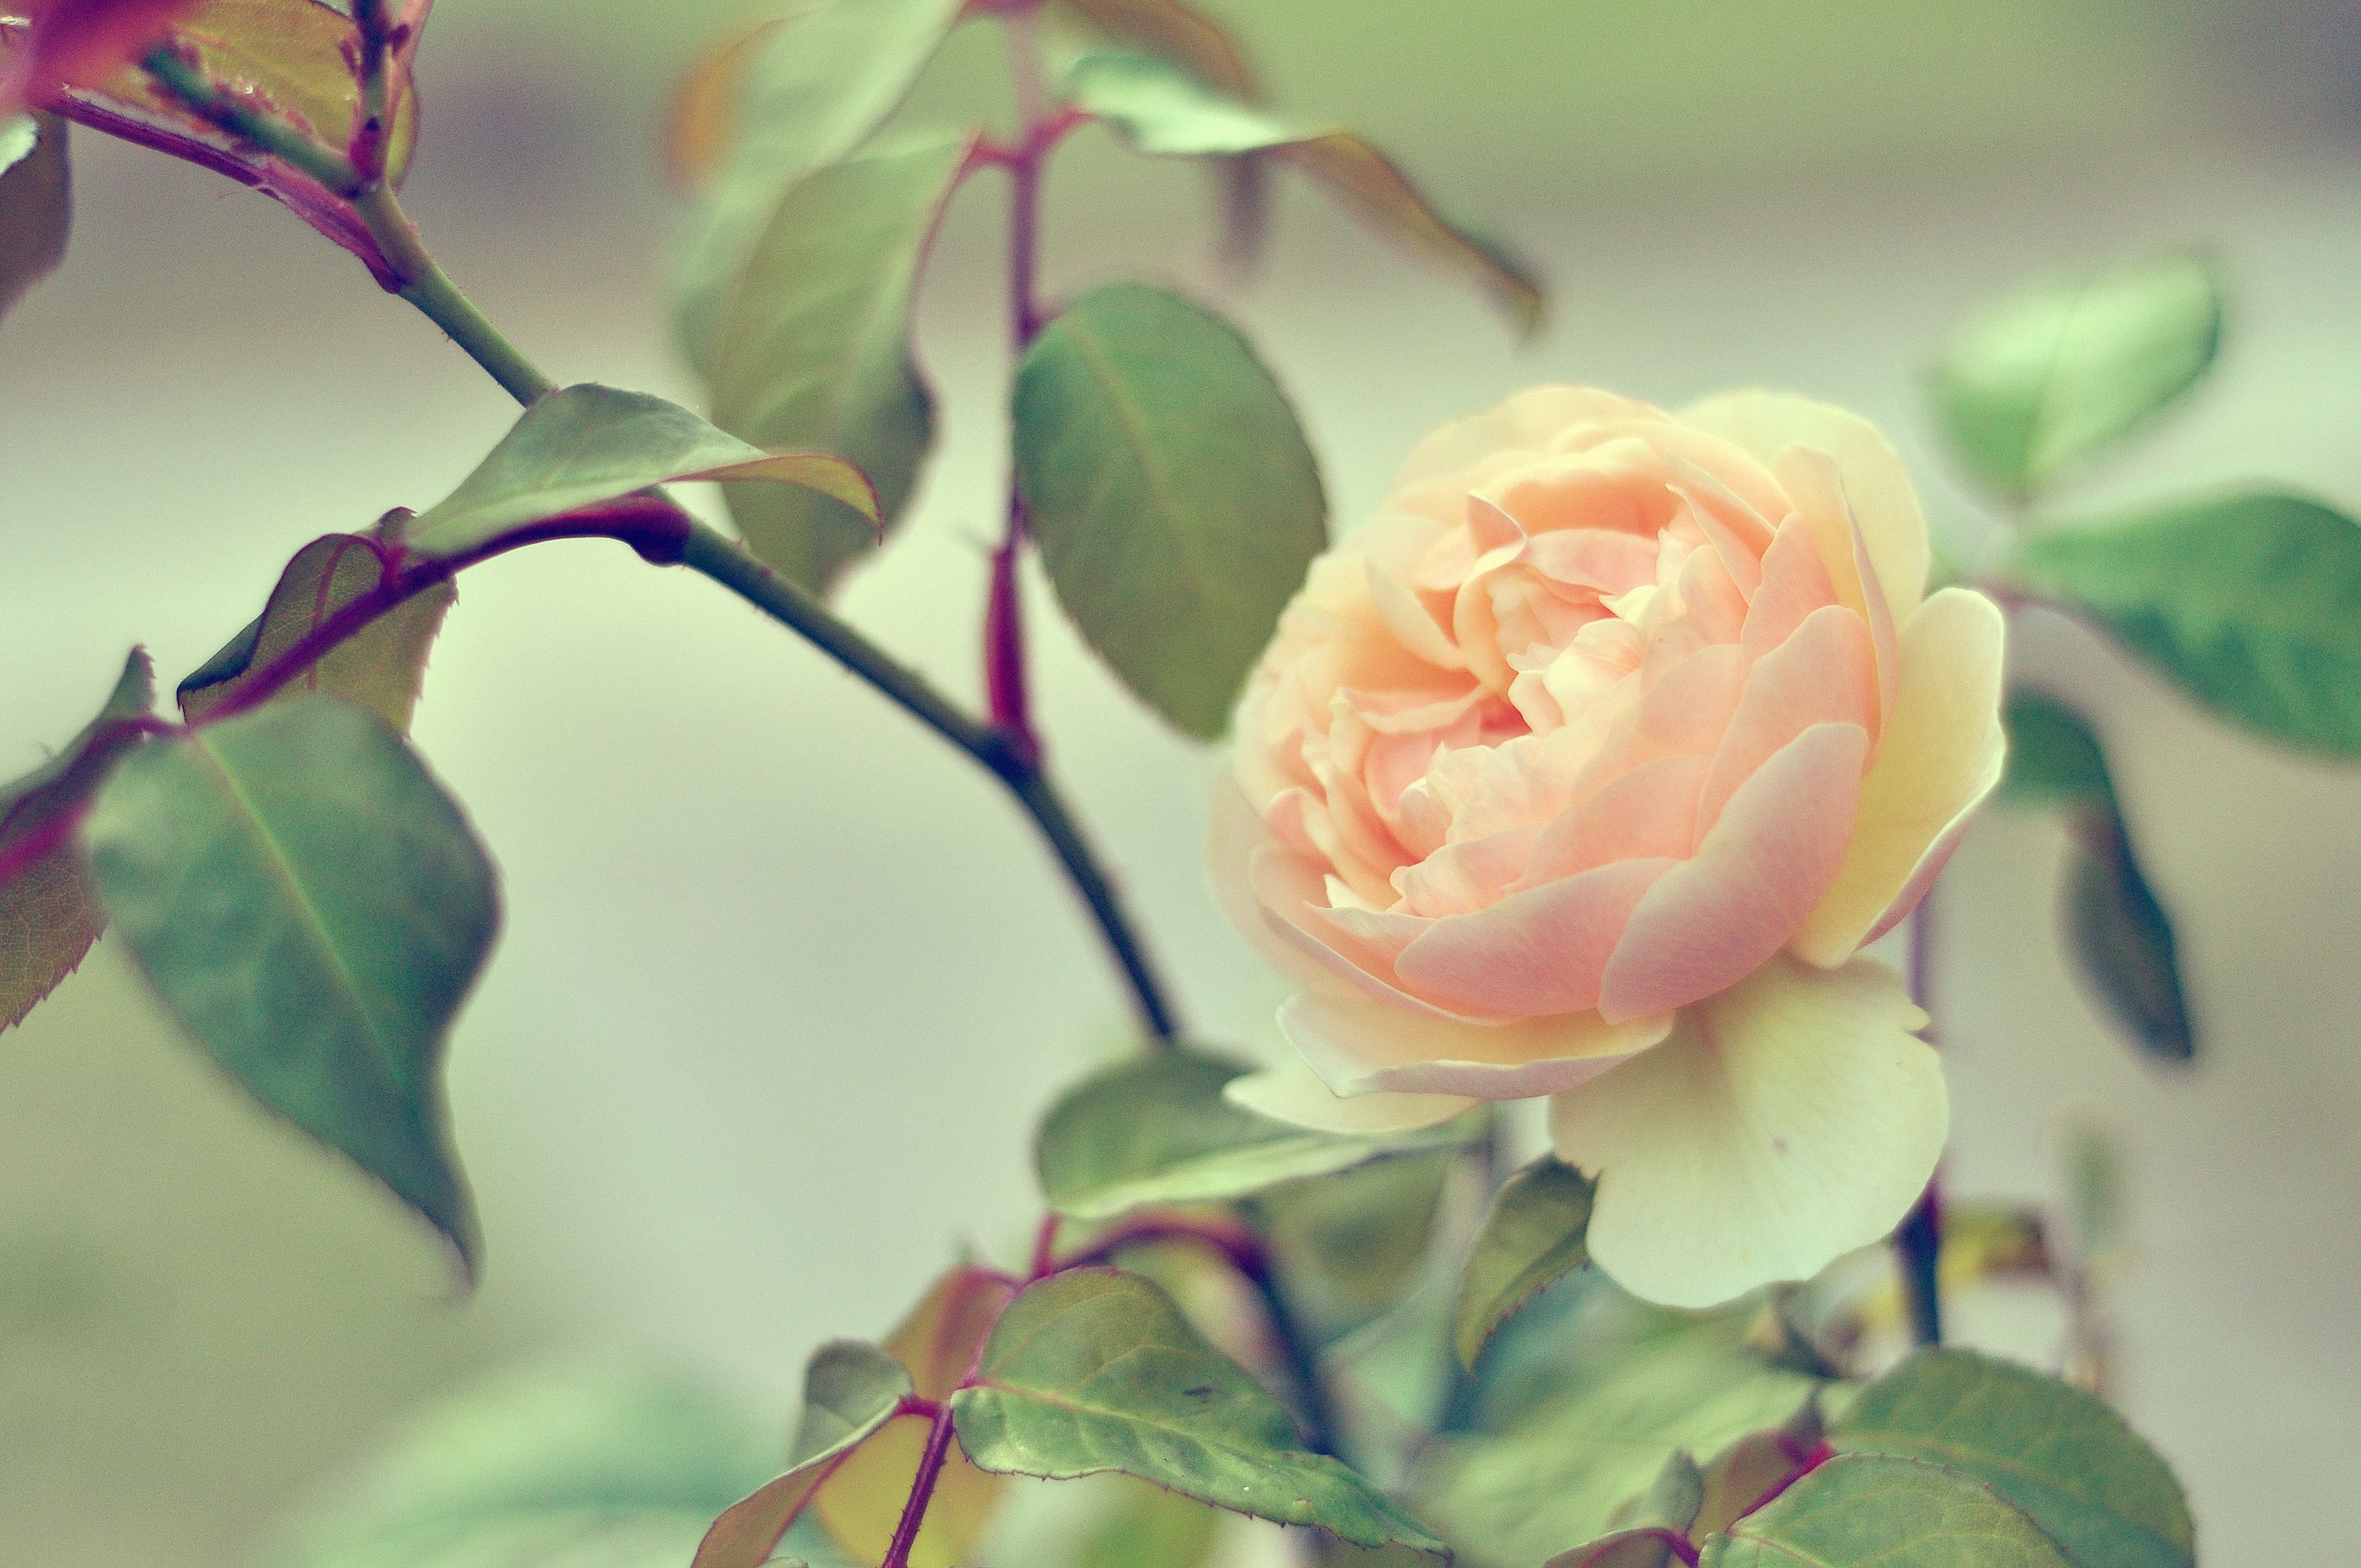 10 Rose Color Meaning Explanations - Meaning Of Rose Colors